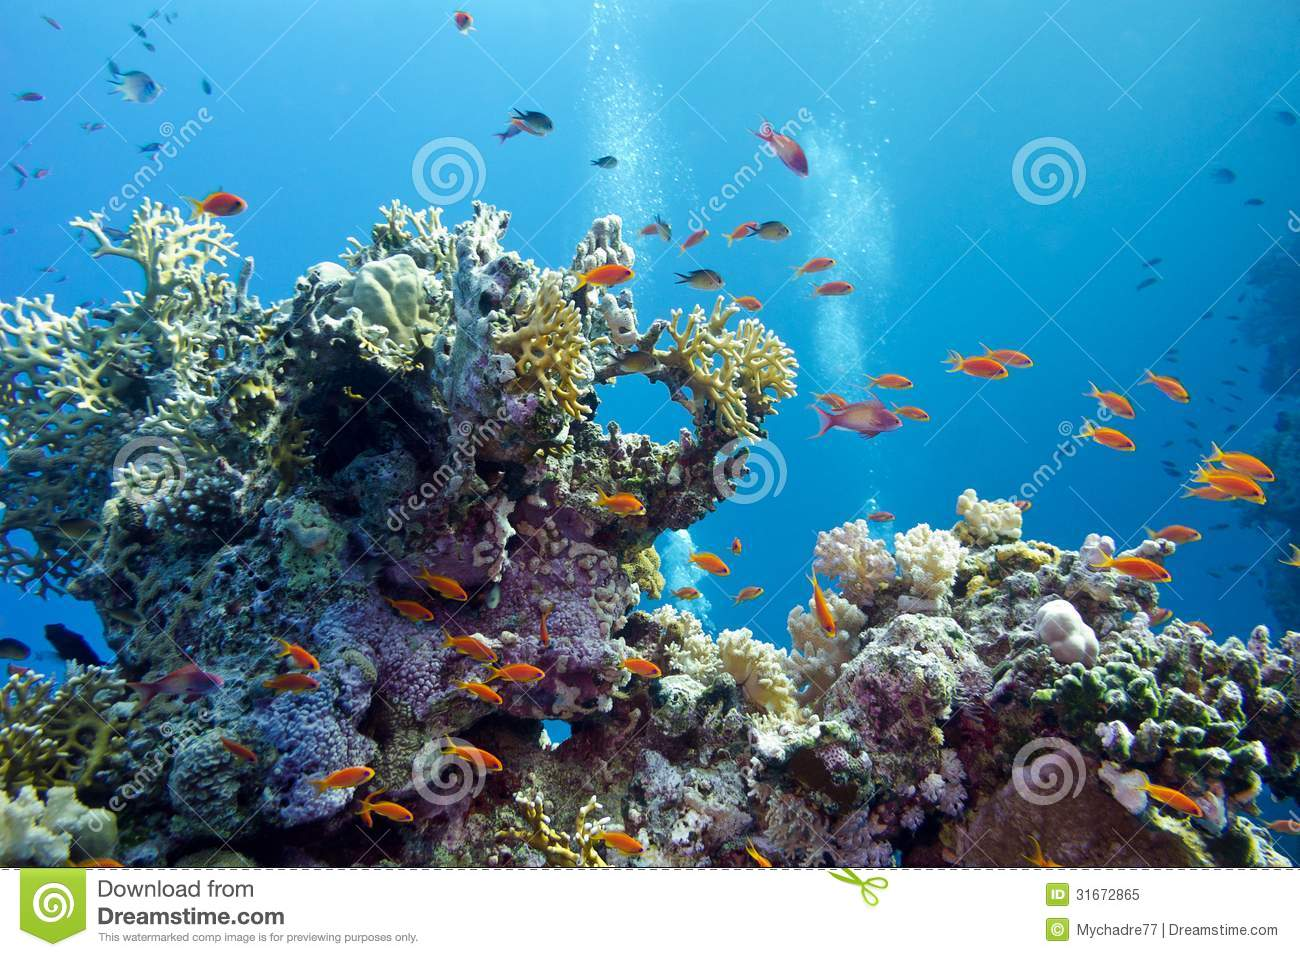 Animated Fish Tank Wallpaper Coral Reef With Hard Corals And Exotic Fishes Anthias At